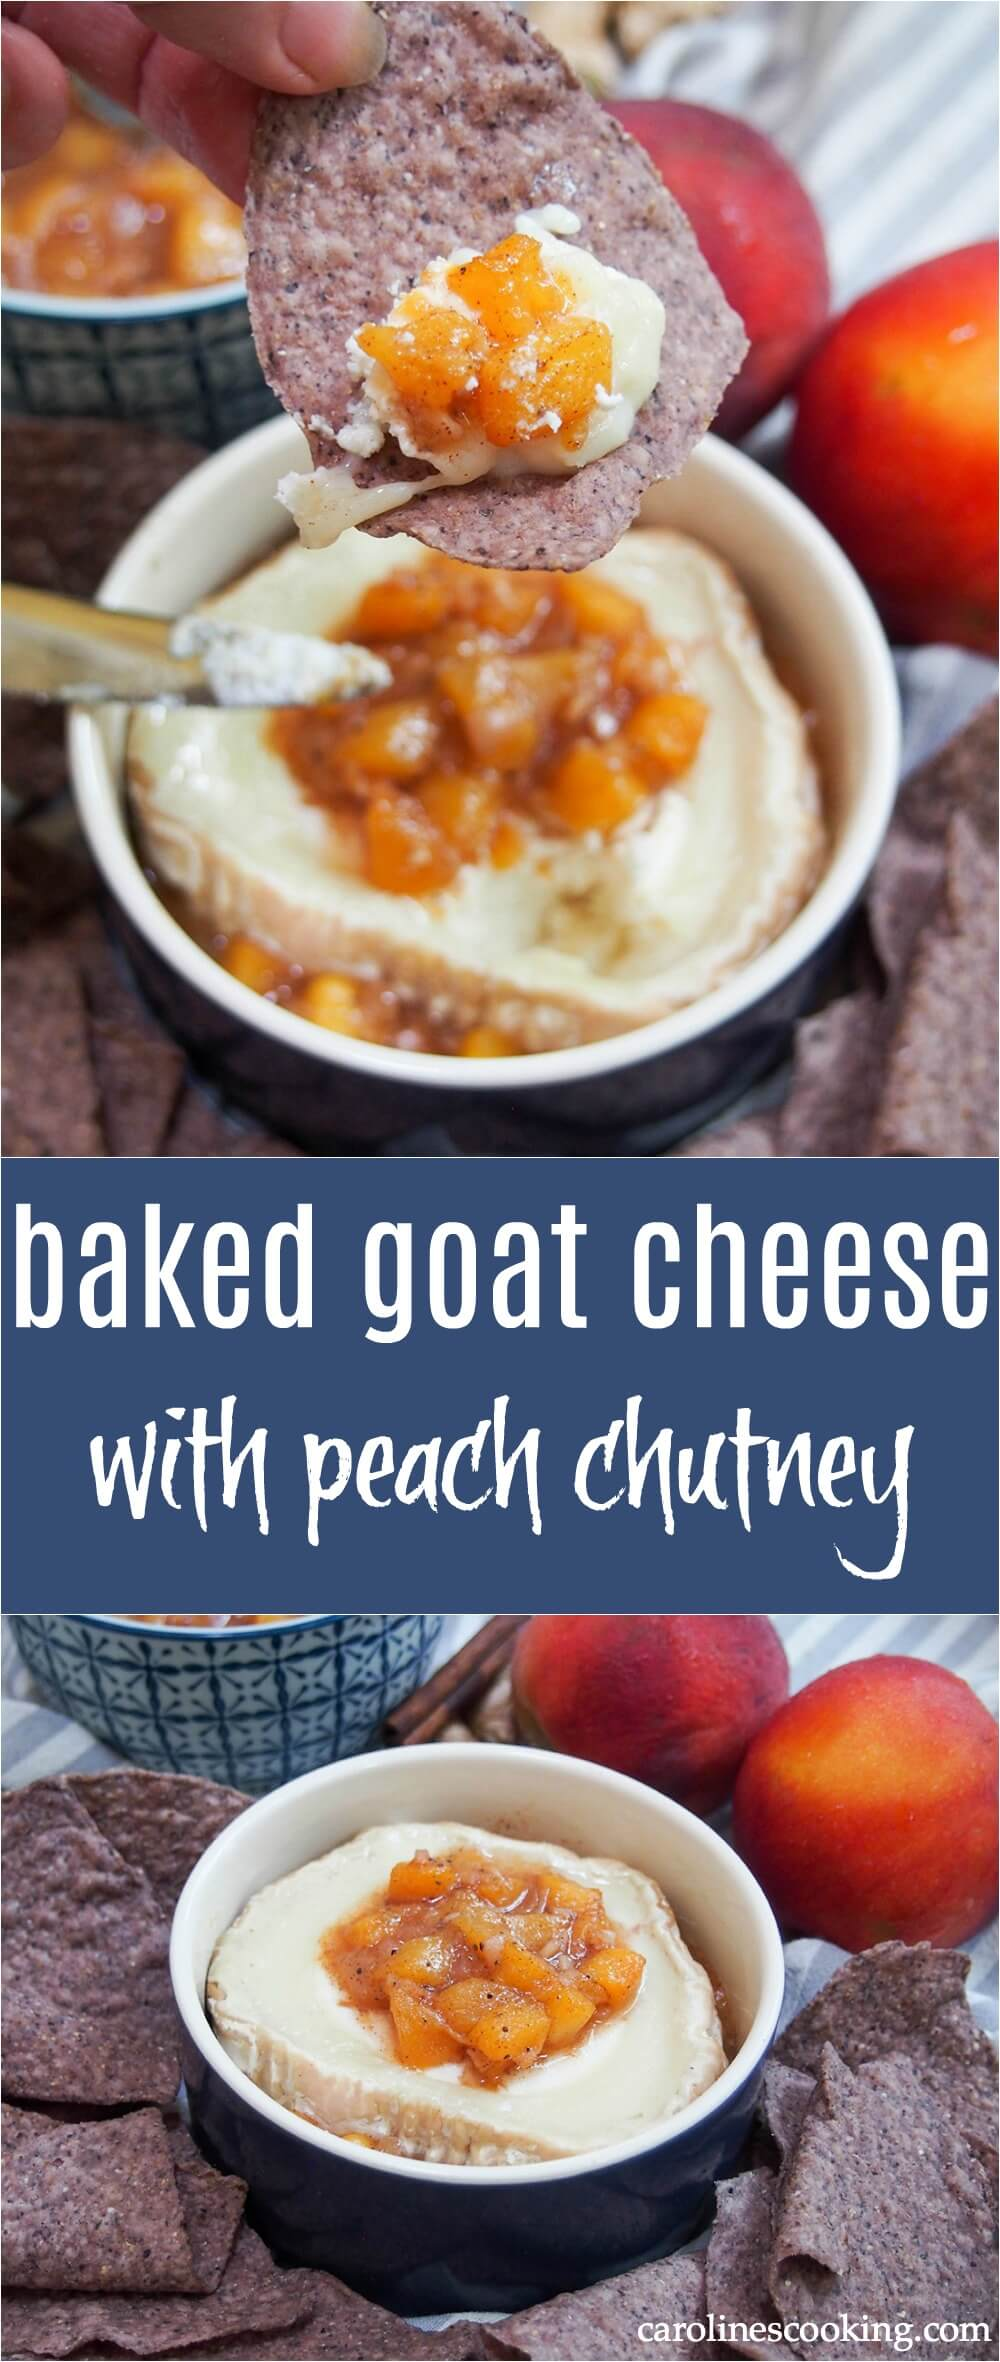 Change up your cheesy appetizer with this easy and tasty baked goat cheese with peach chutney. A delicious mix of flavors, it's great with chips, crackers and bread. It takes mere minutes to make and is great whether for entertaining or just because! #goatcheese #bakedcheese #chutney #appetizer